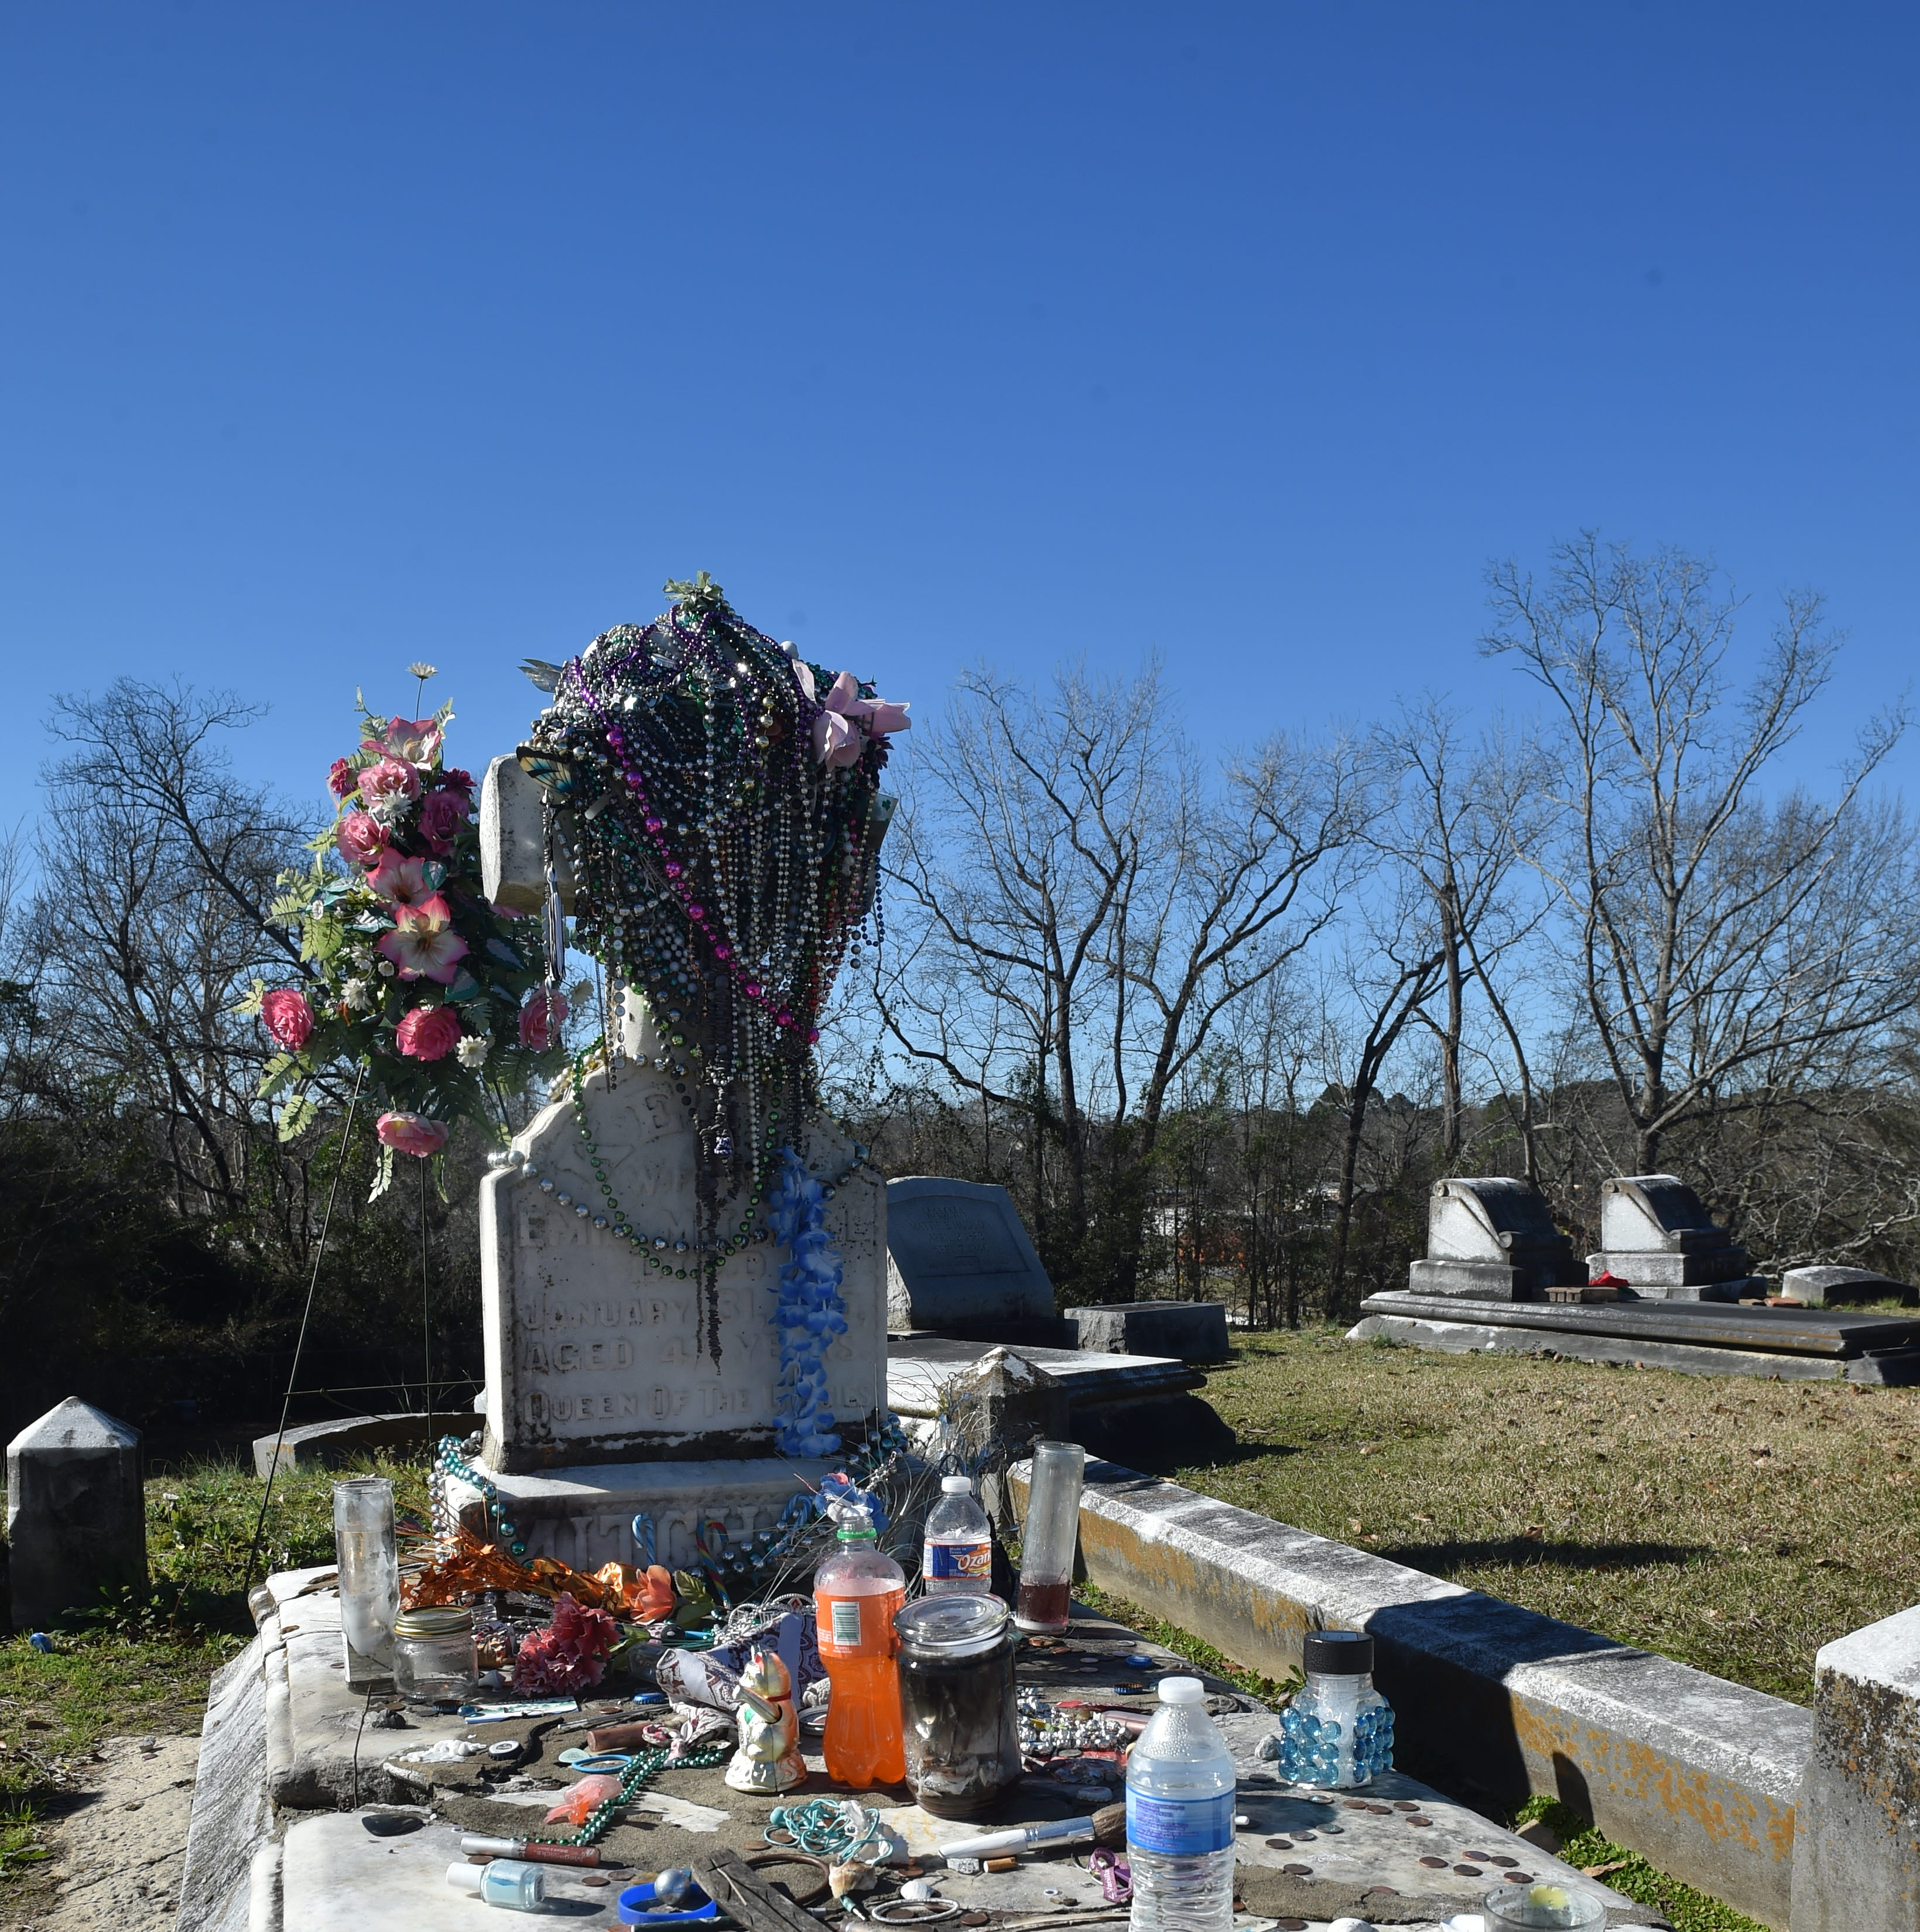 Hundreds visit her gravesite each year. The Queen of the Gypsies is Mississippi royalty